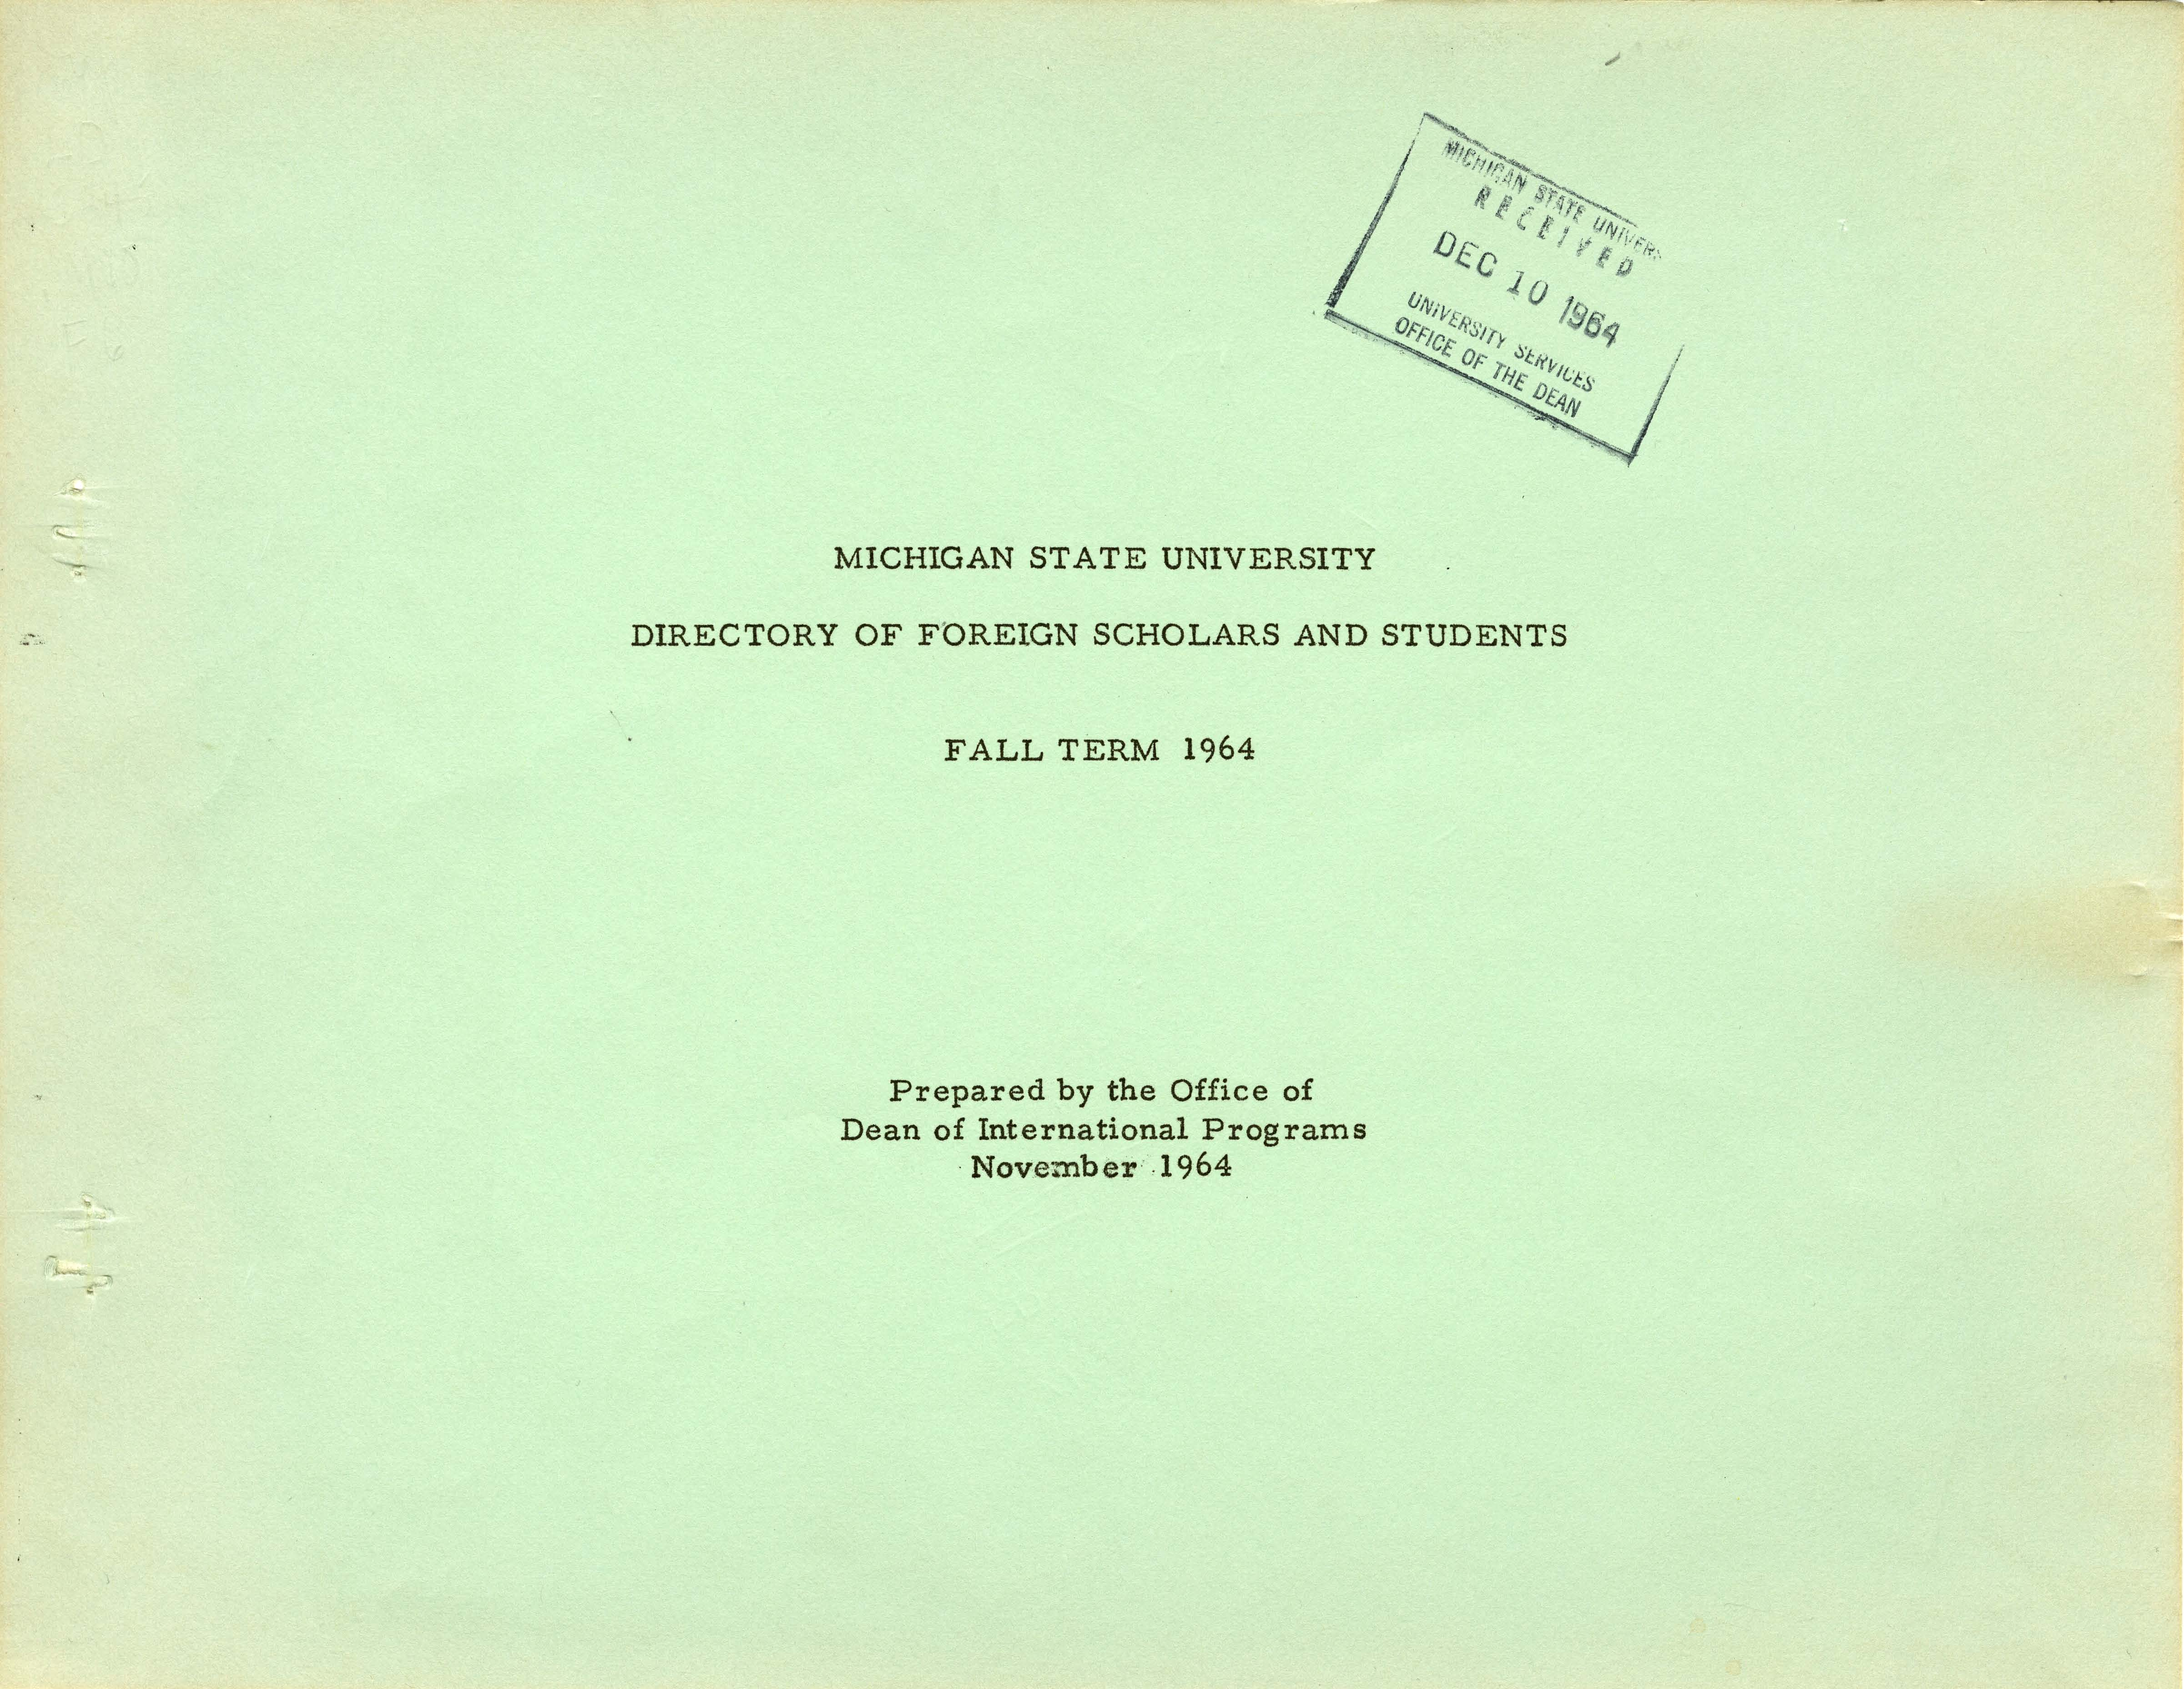 1964 (Fall) International Student and Scholar Directory